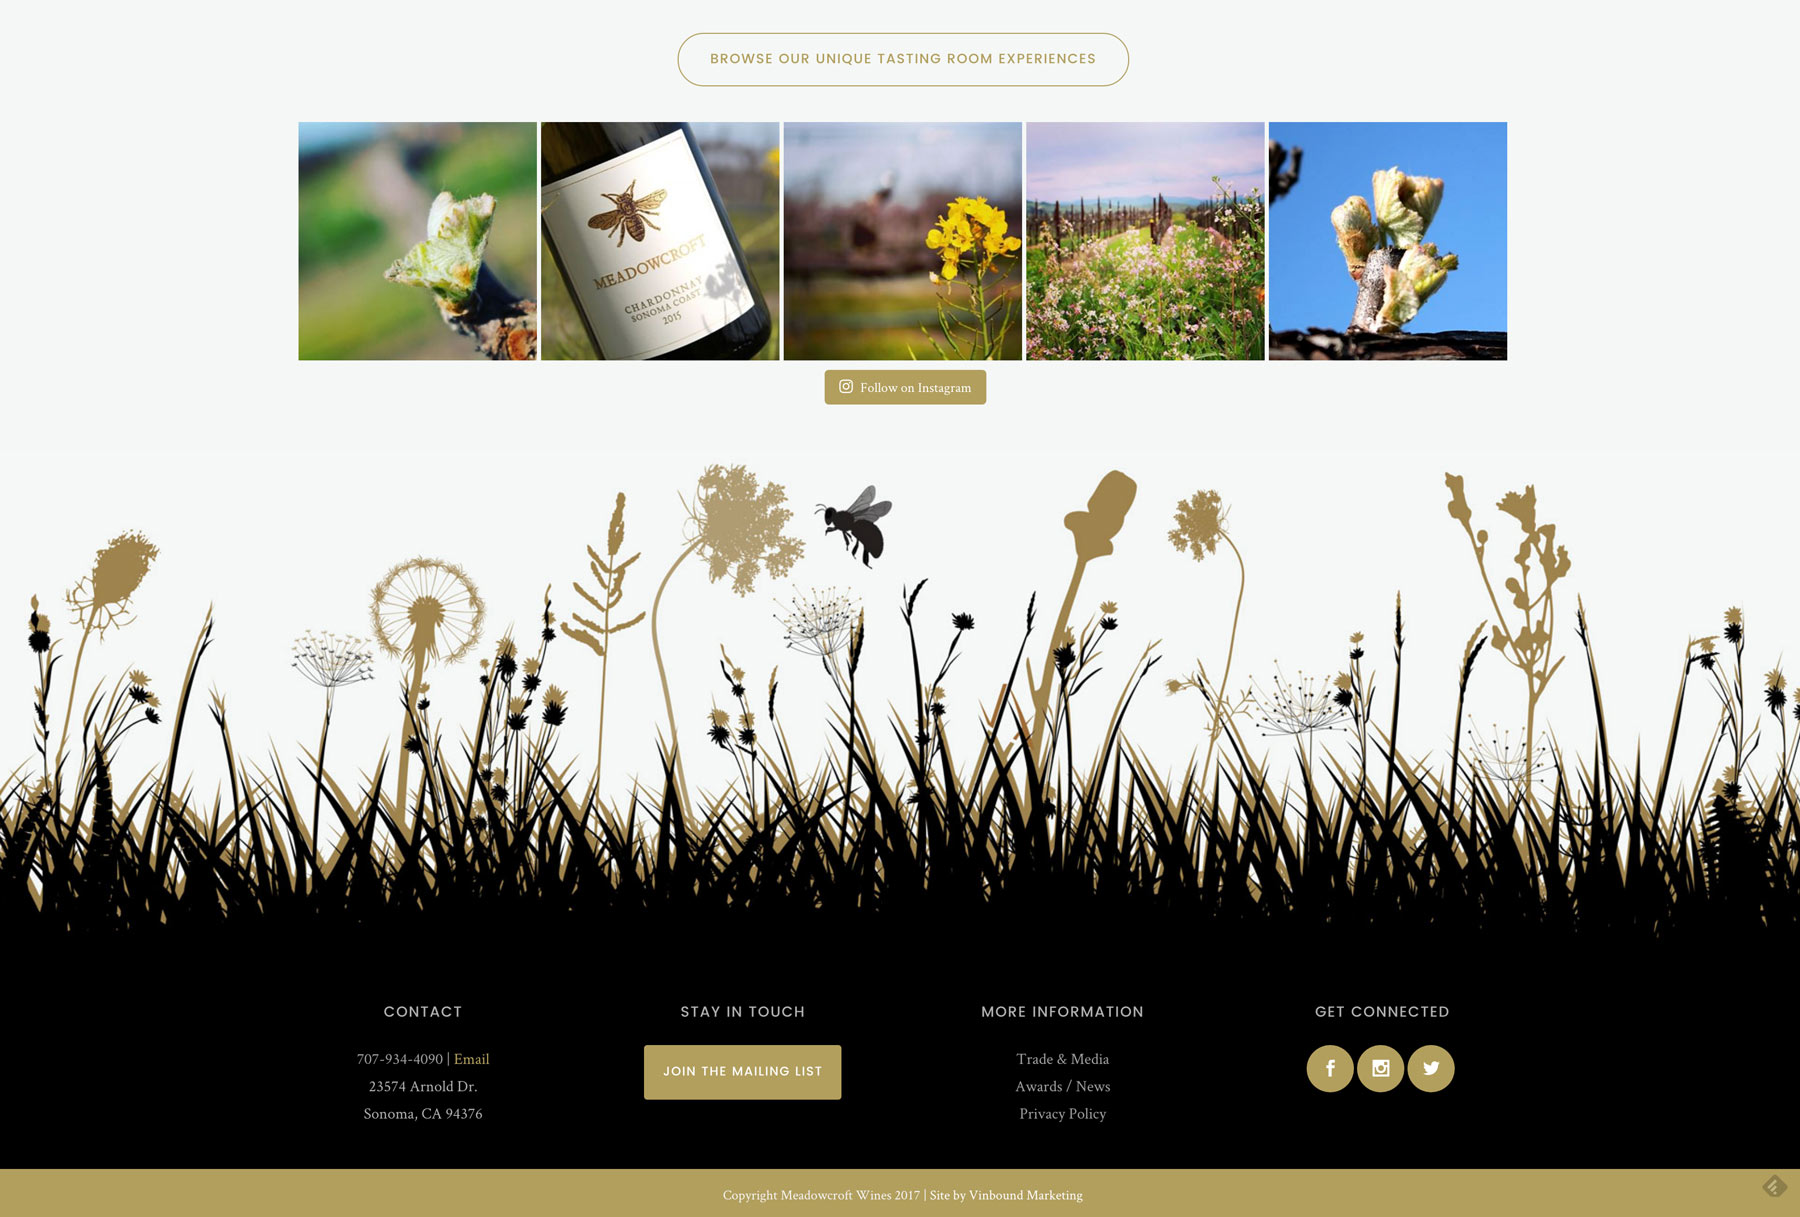 Winery website footer